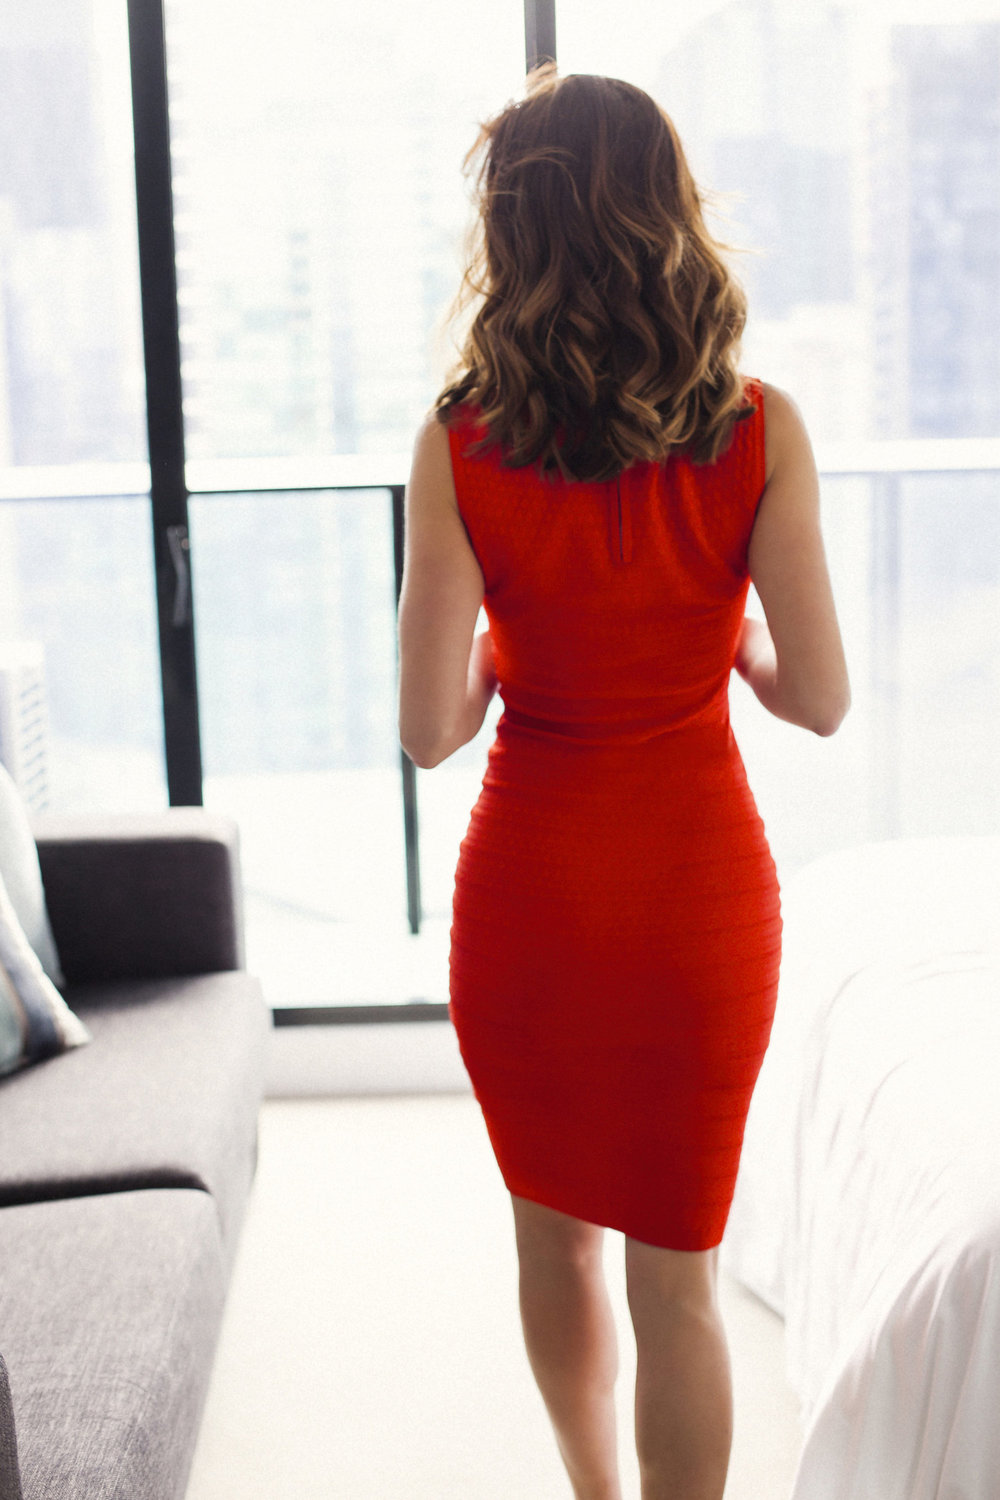 Emmy_Eden_Private_Escort_Red_Dress_01.jpg